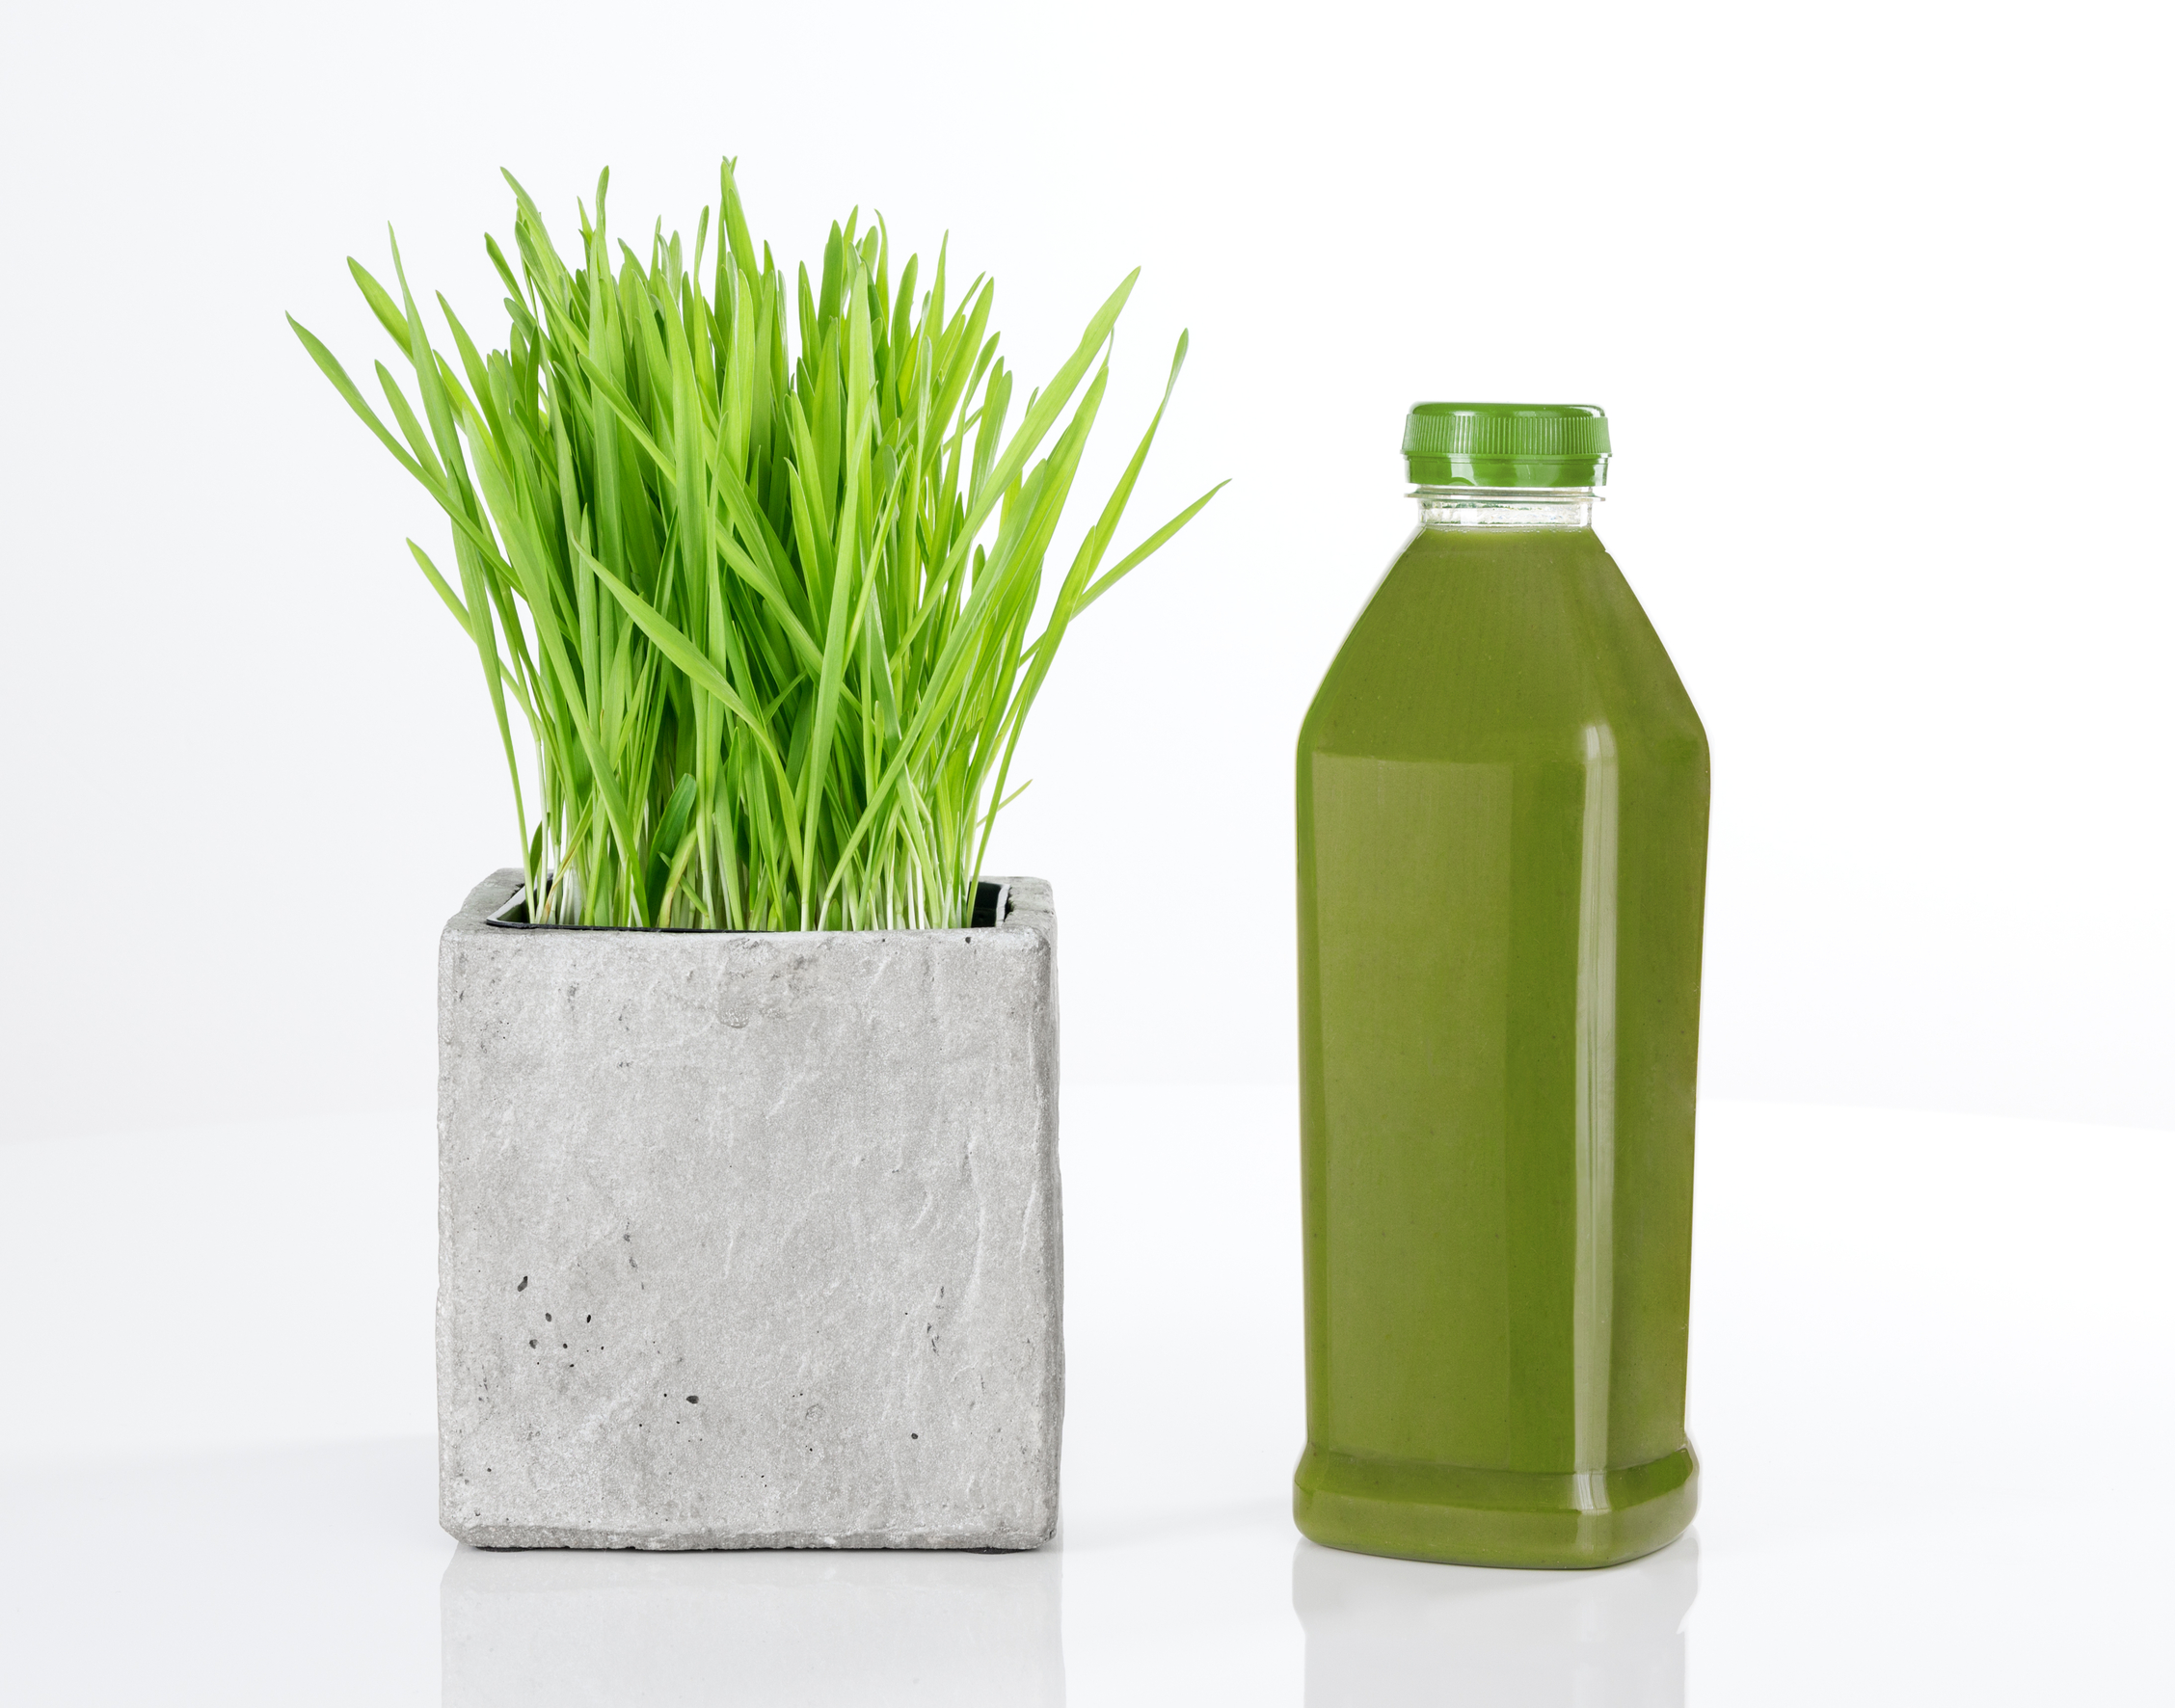 The 10 Best Kept Secrets About Wheatgrass